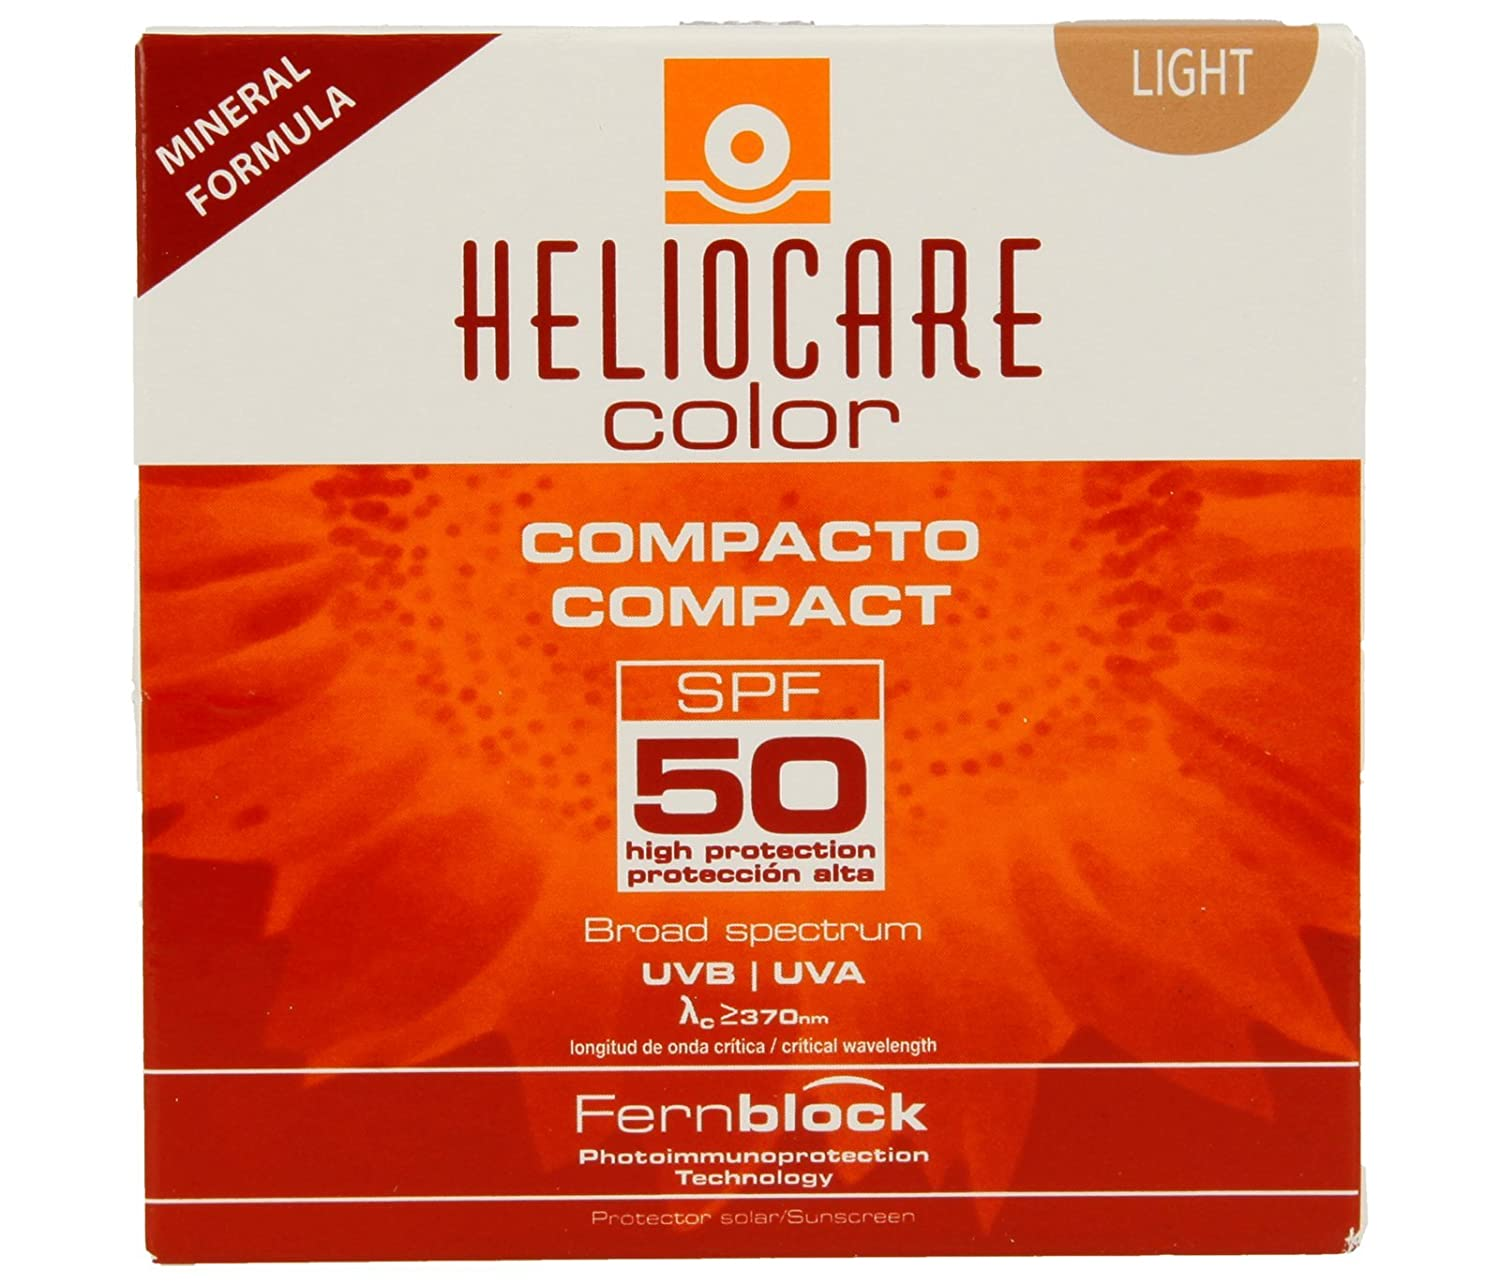 Heliocare Color Compact Make Up Spf50 Light 10g IFC / AesthetiCare